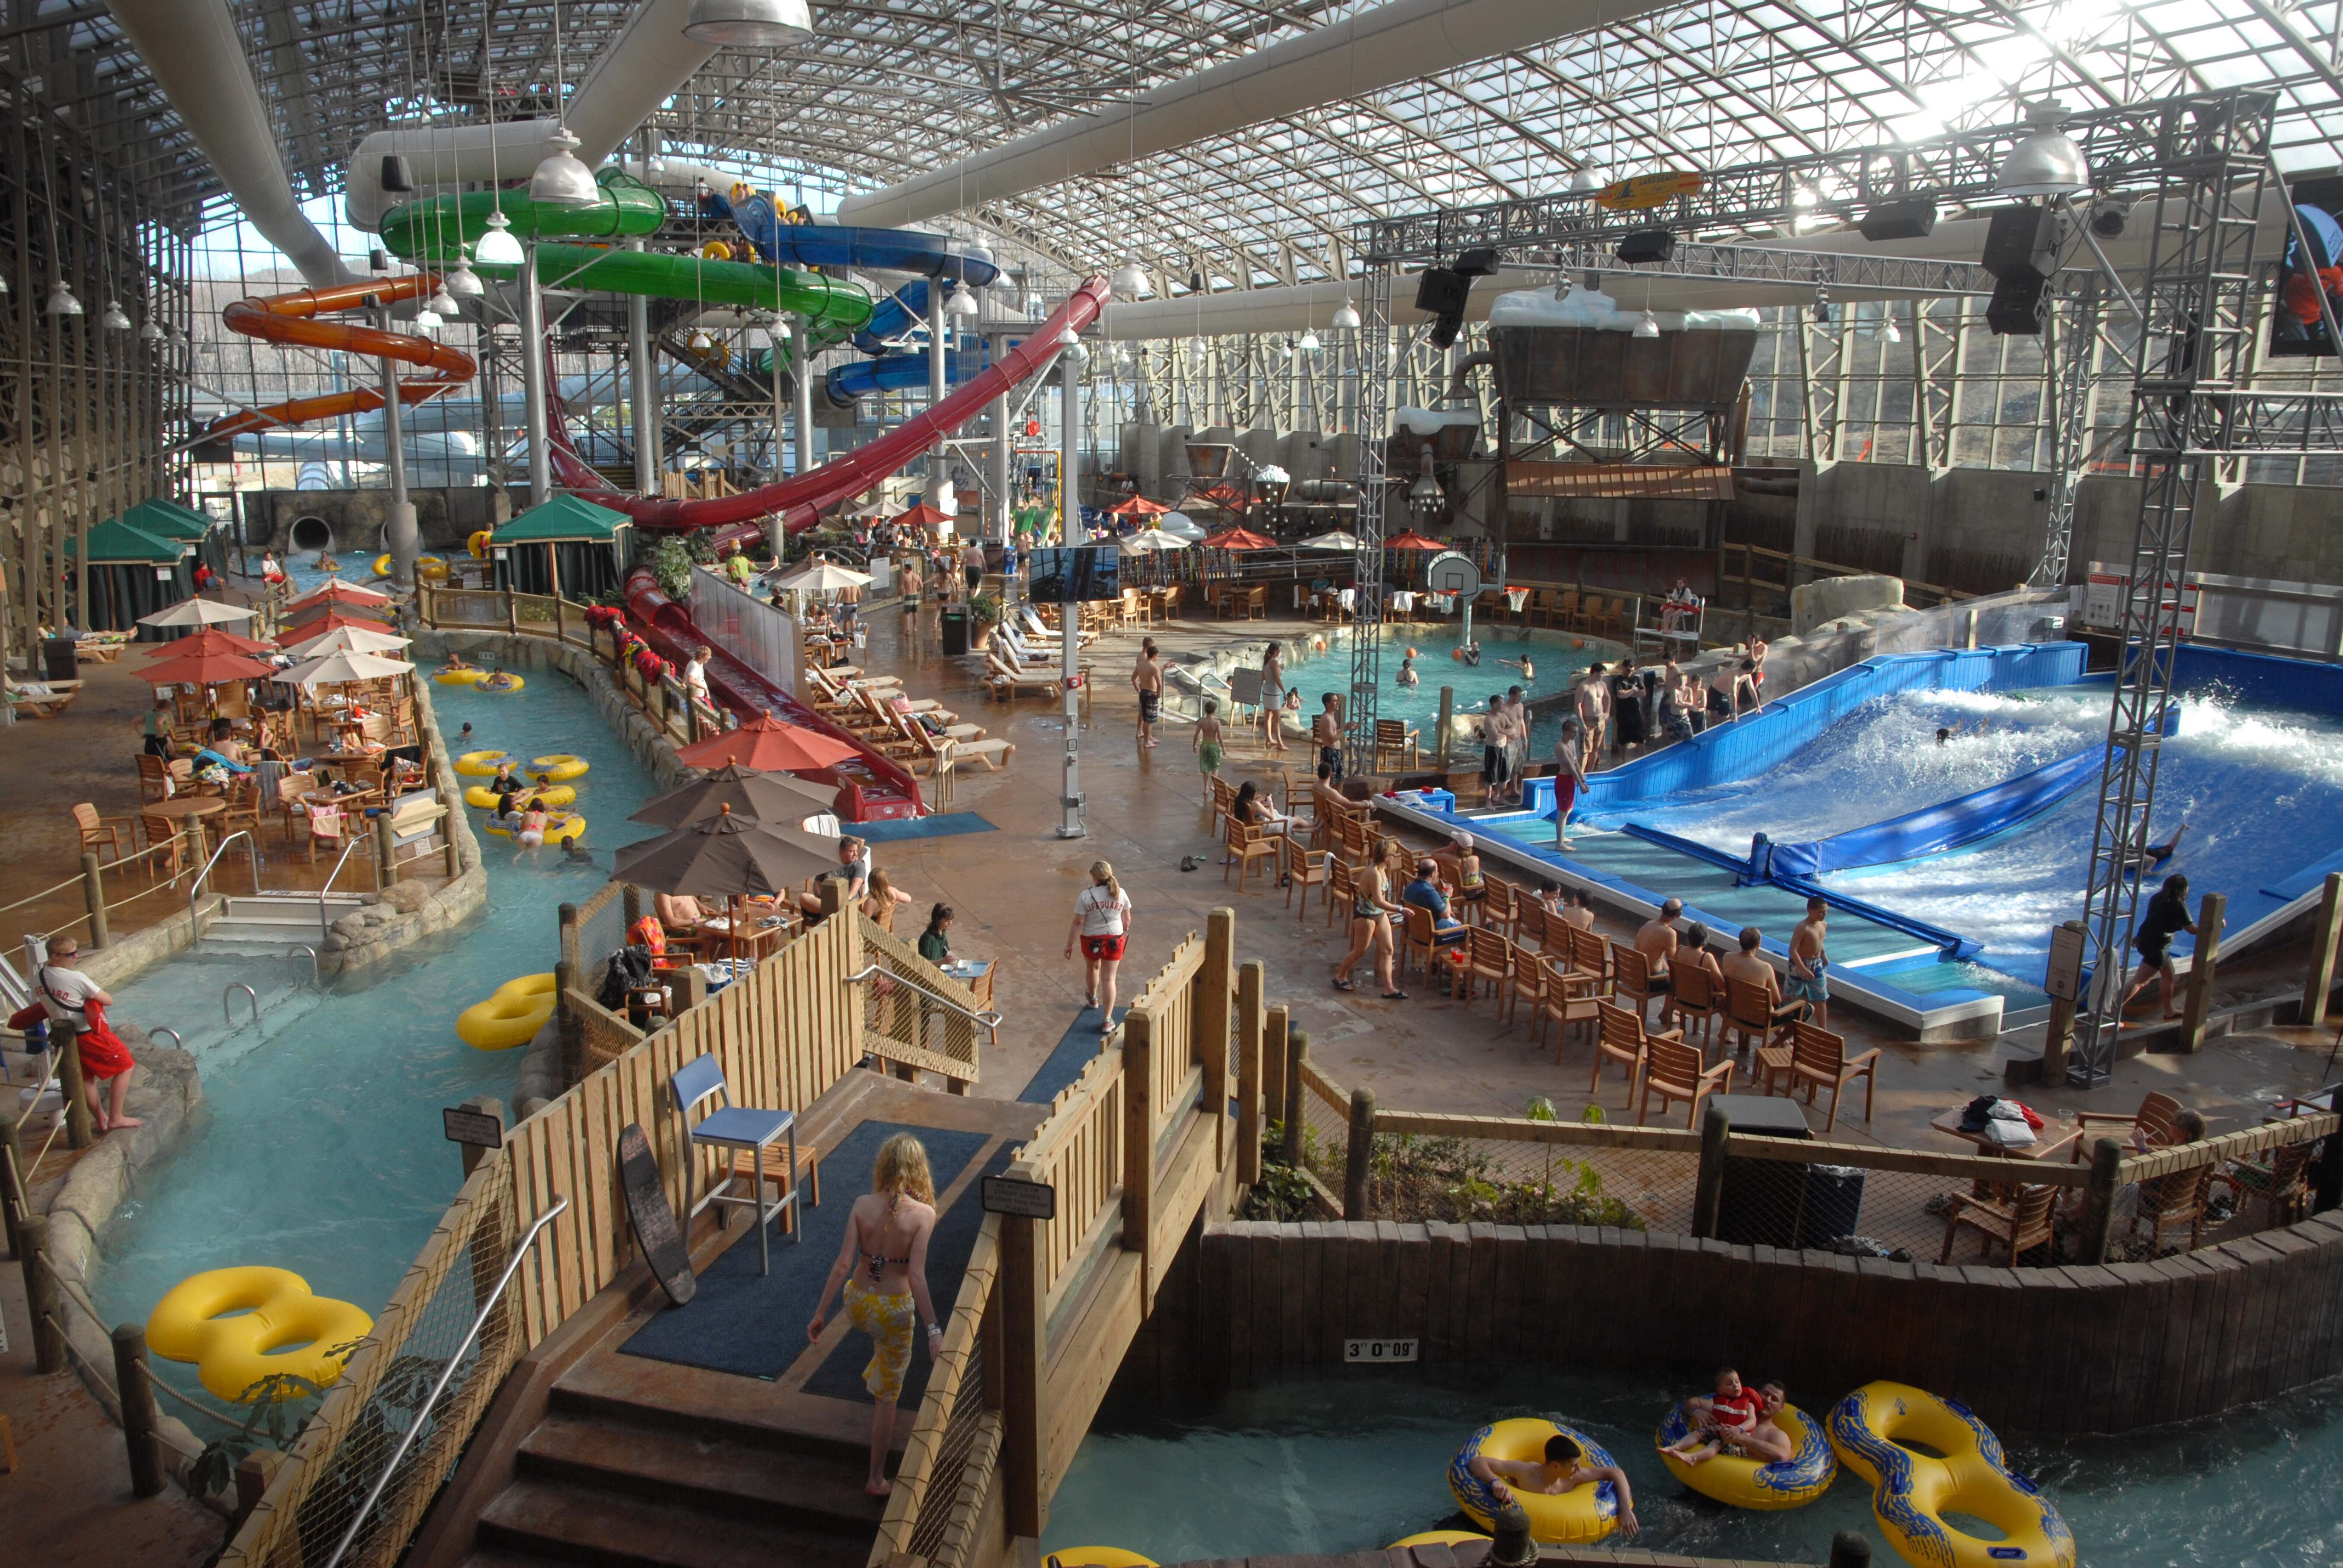 People use the water park at Jay Peak in Jay Vermont